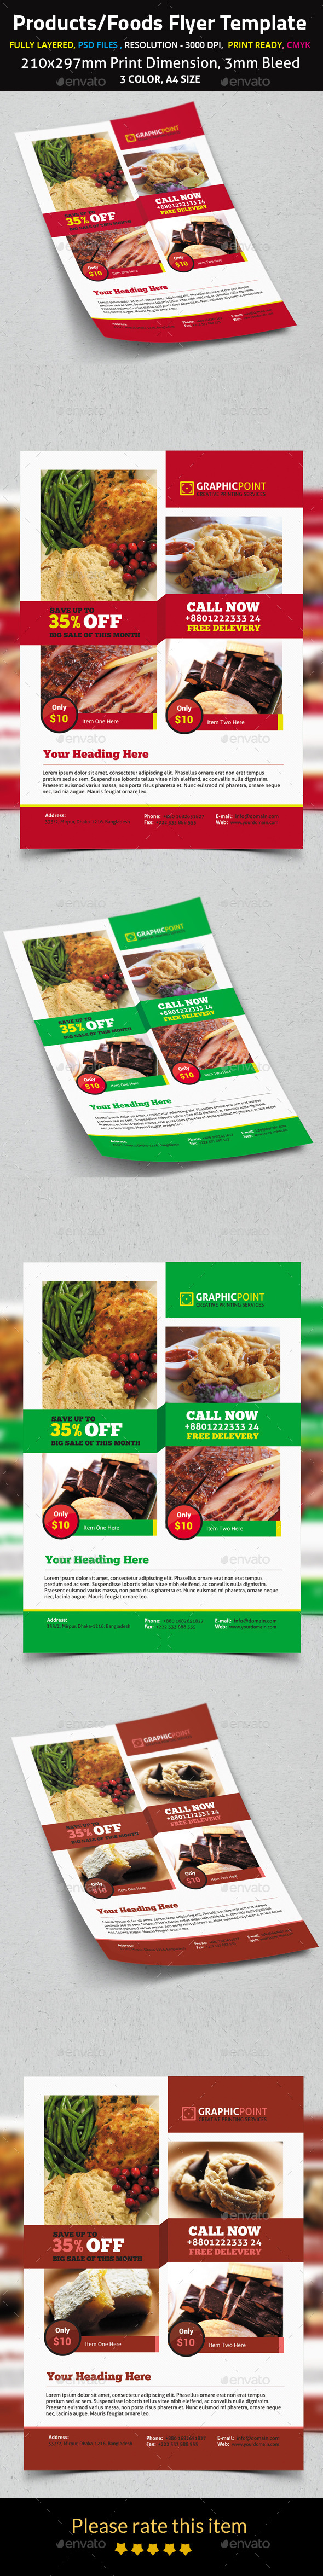 Products/Foods Flyer Template